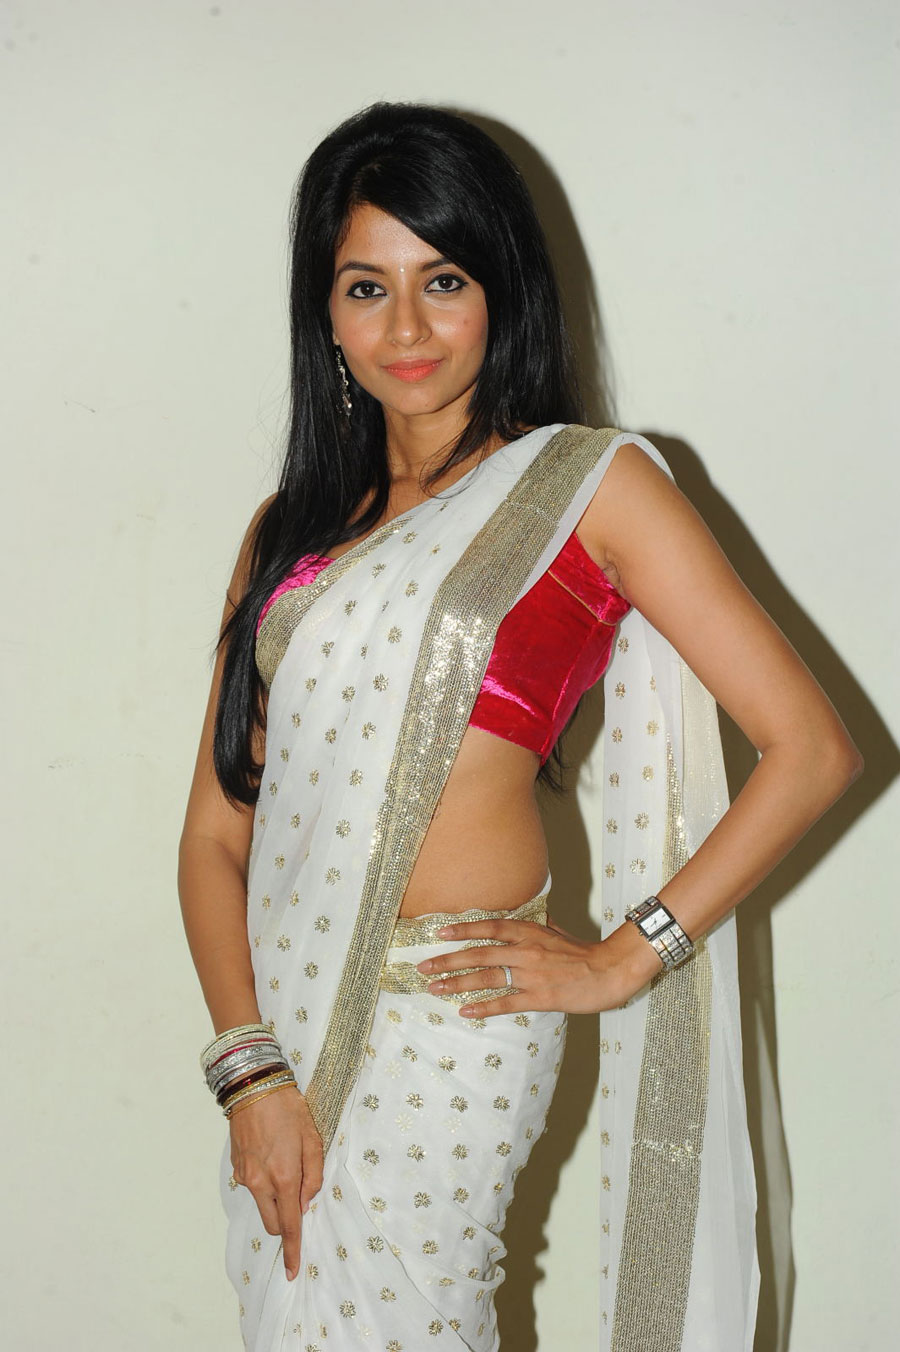 New Face Amrutha in Saree Photo Gallery Amruth20